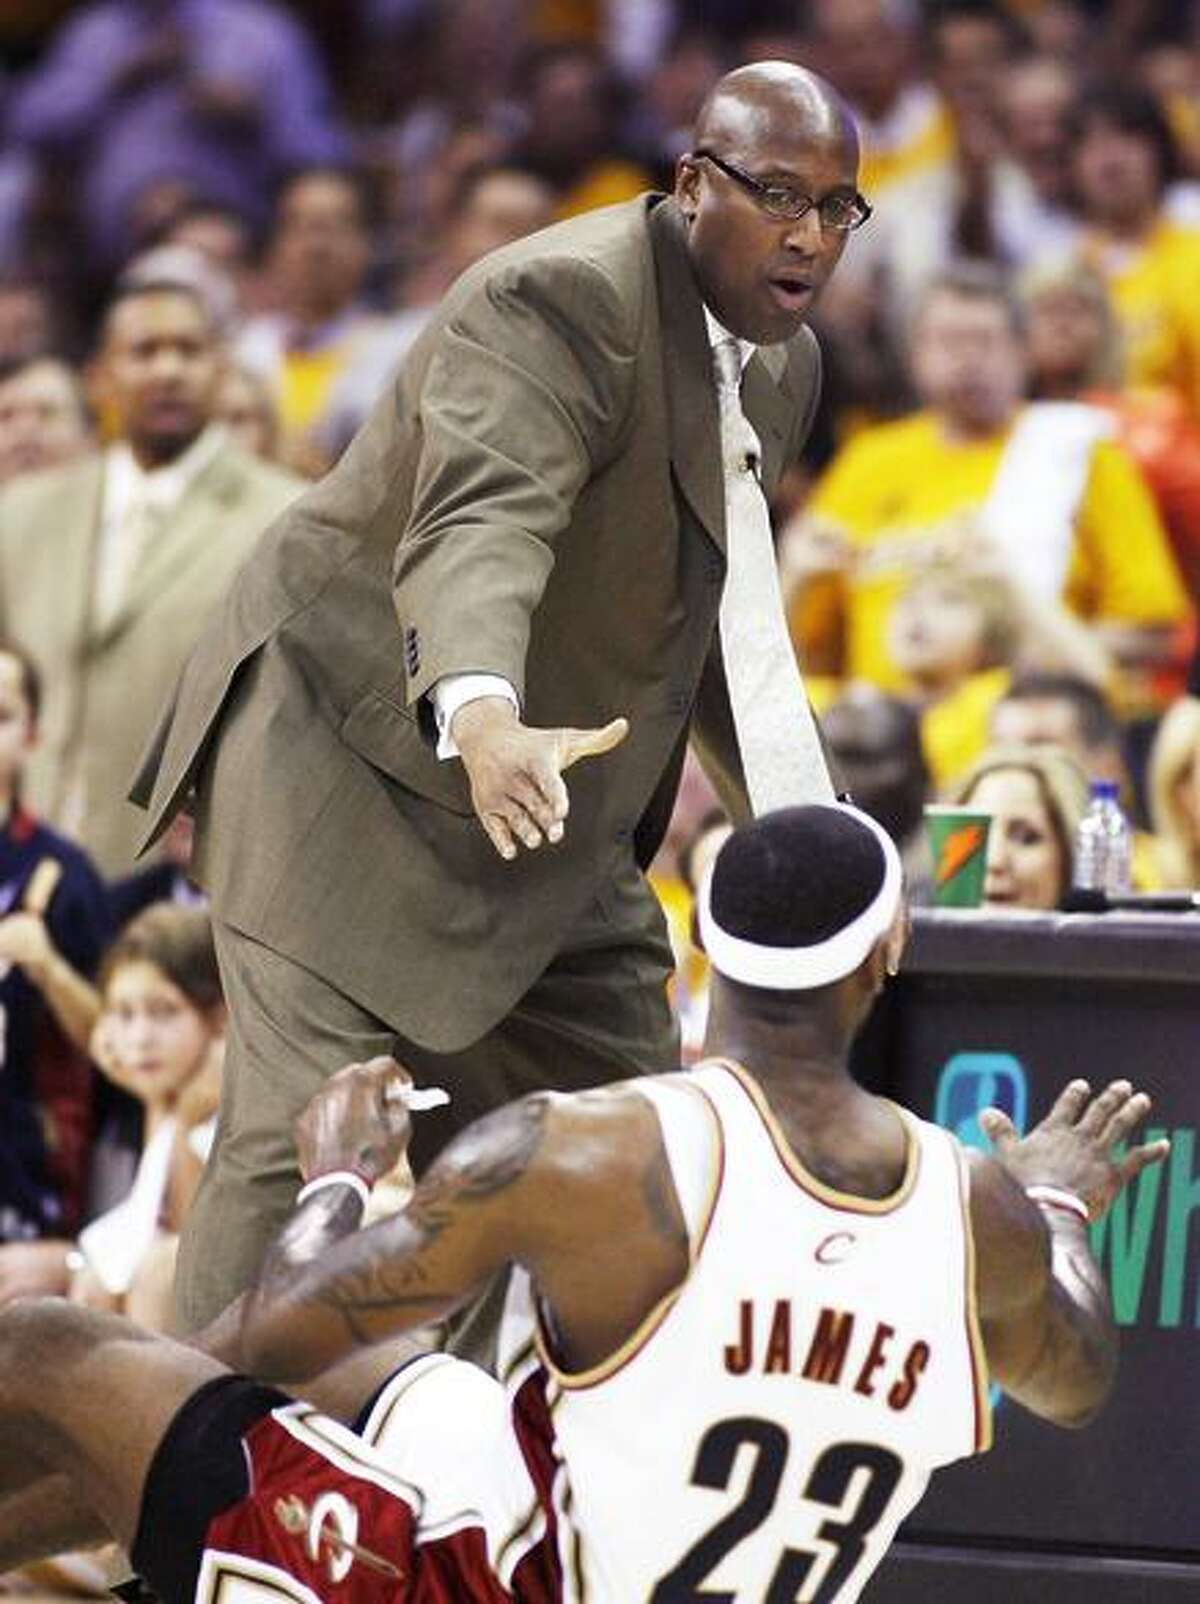 CLEVELAND - APRIL 21: Mike Brown head coach of the Cleveland Cavaliers helps LeBron James #23 off the court while playing the Washington Wizards in Game Two of the Eastern Conference Quarterfinals during the 2008 NBA Playoffs at Quicken Loans Arena on April 21, 2008 in Cleveland, Ohio. Cleveland won the game 116-86. NOTE TO USER: User expressly acknowledges and agrees that, by downloading and or using this photograph, User is consenting to the terms and conditions of the Getty Images License Agreement. (Photo by Gregory Shamus/Getty Images)